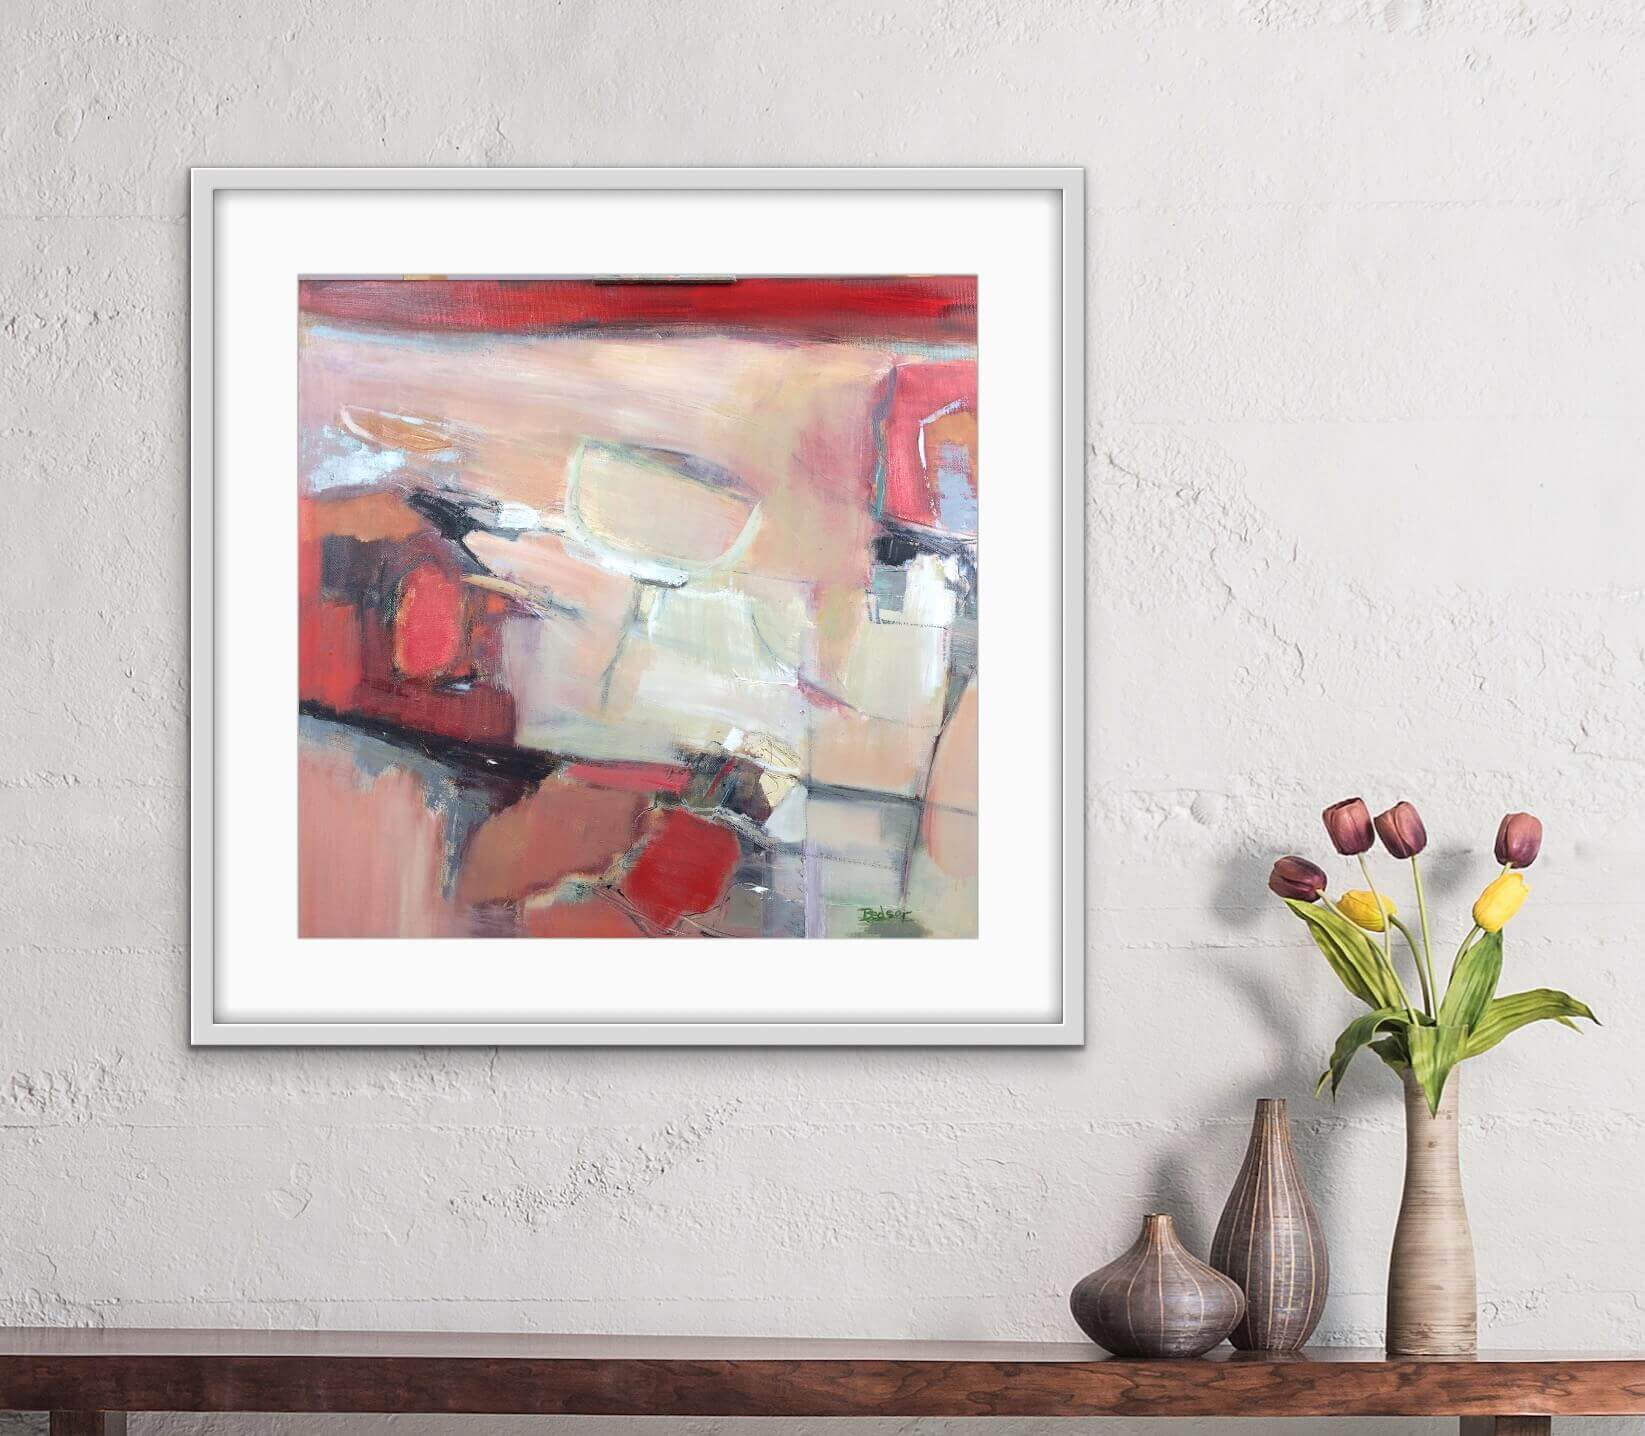 Moving Through Abstract Oil Painting Hanging in Hall Way